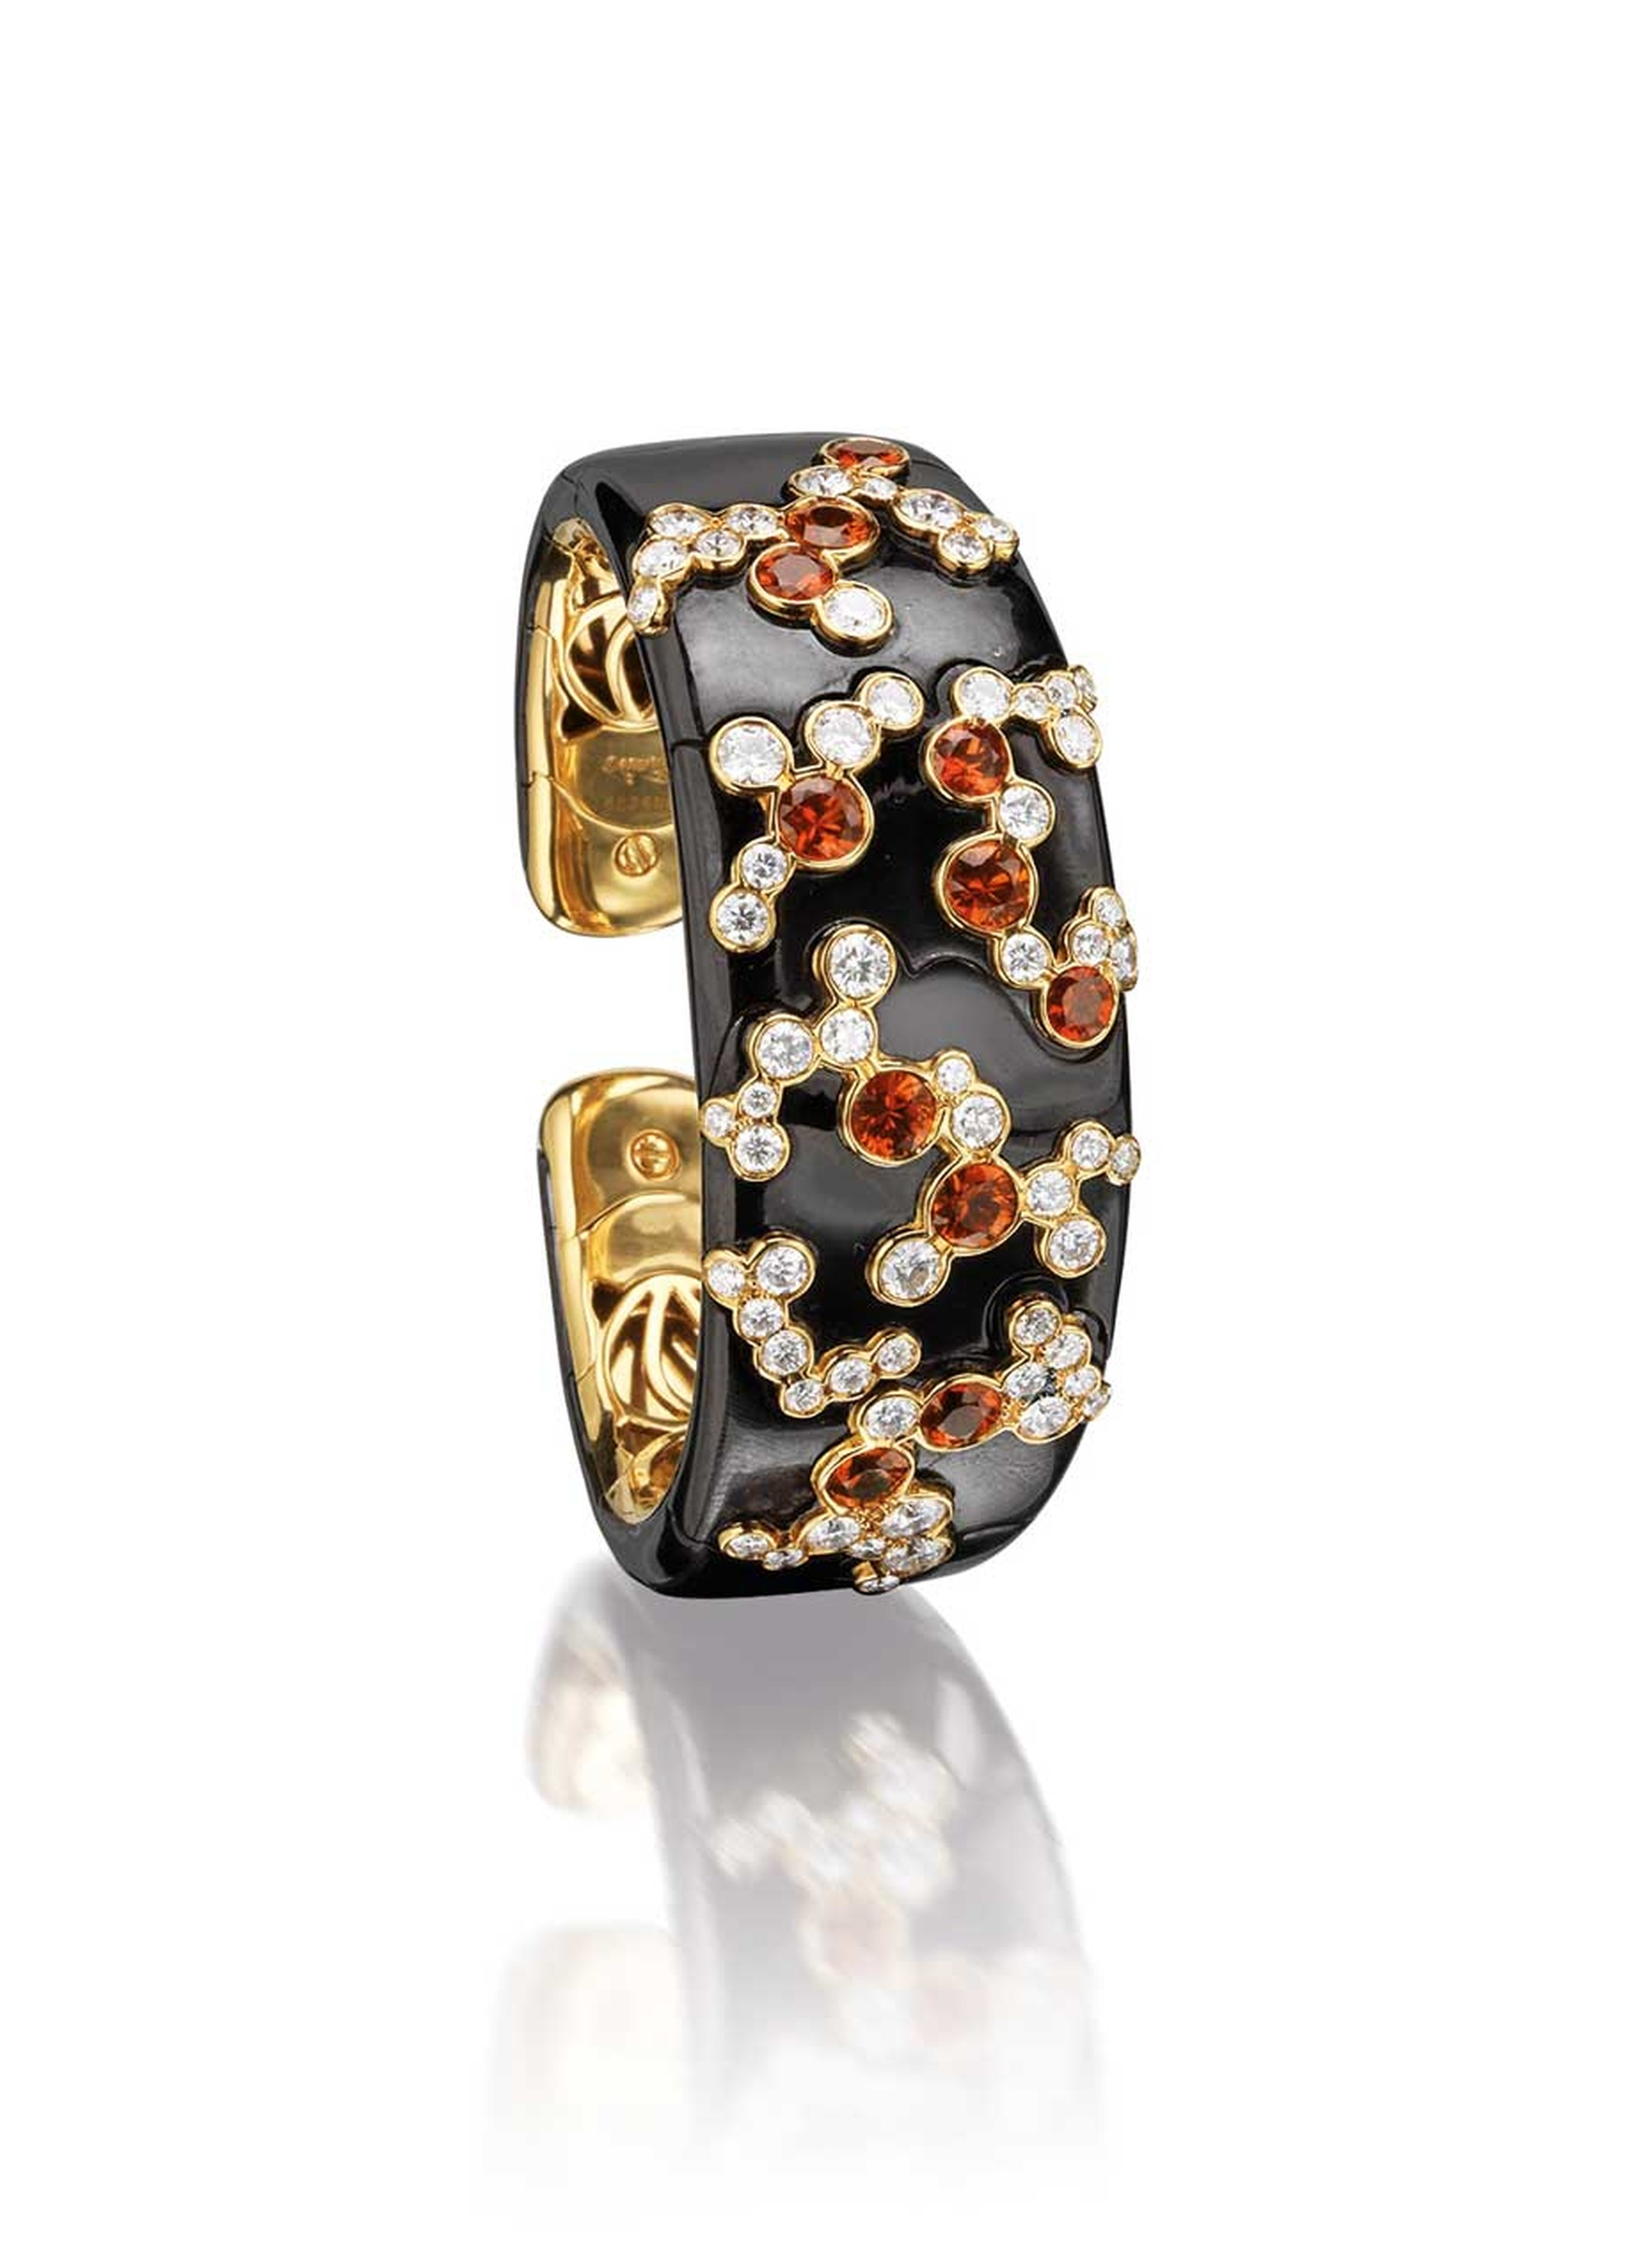 Marina B hinged bangle, influenced by Japanese culture and the cherry blossom. The bangle features brilliant-cut diamonds and circular-cut orange sapphires (estimate: £10,900-15,600).